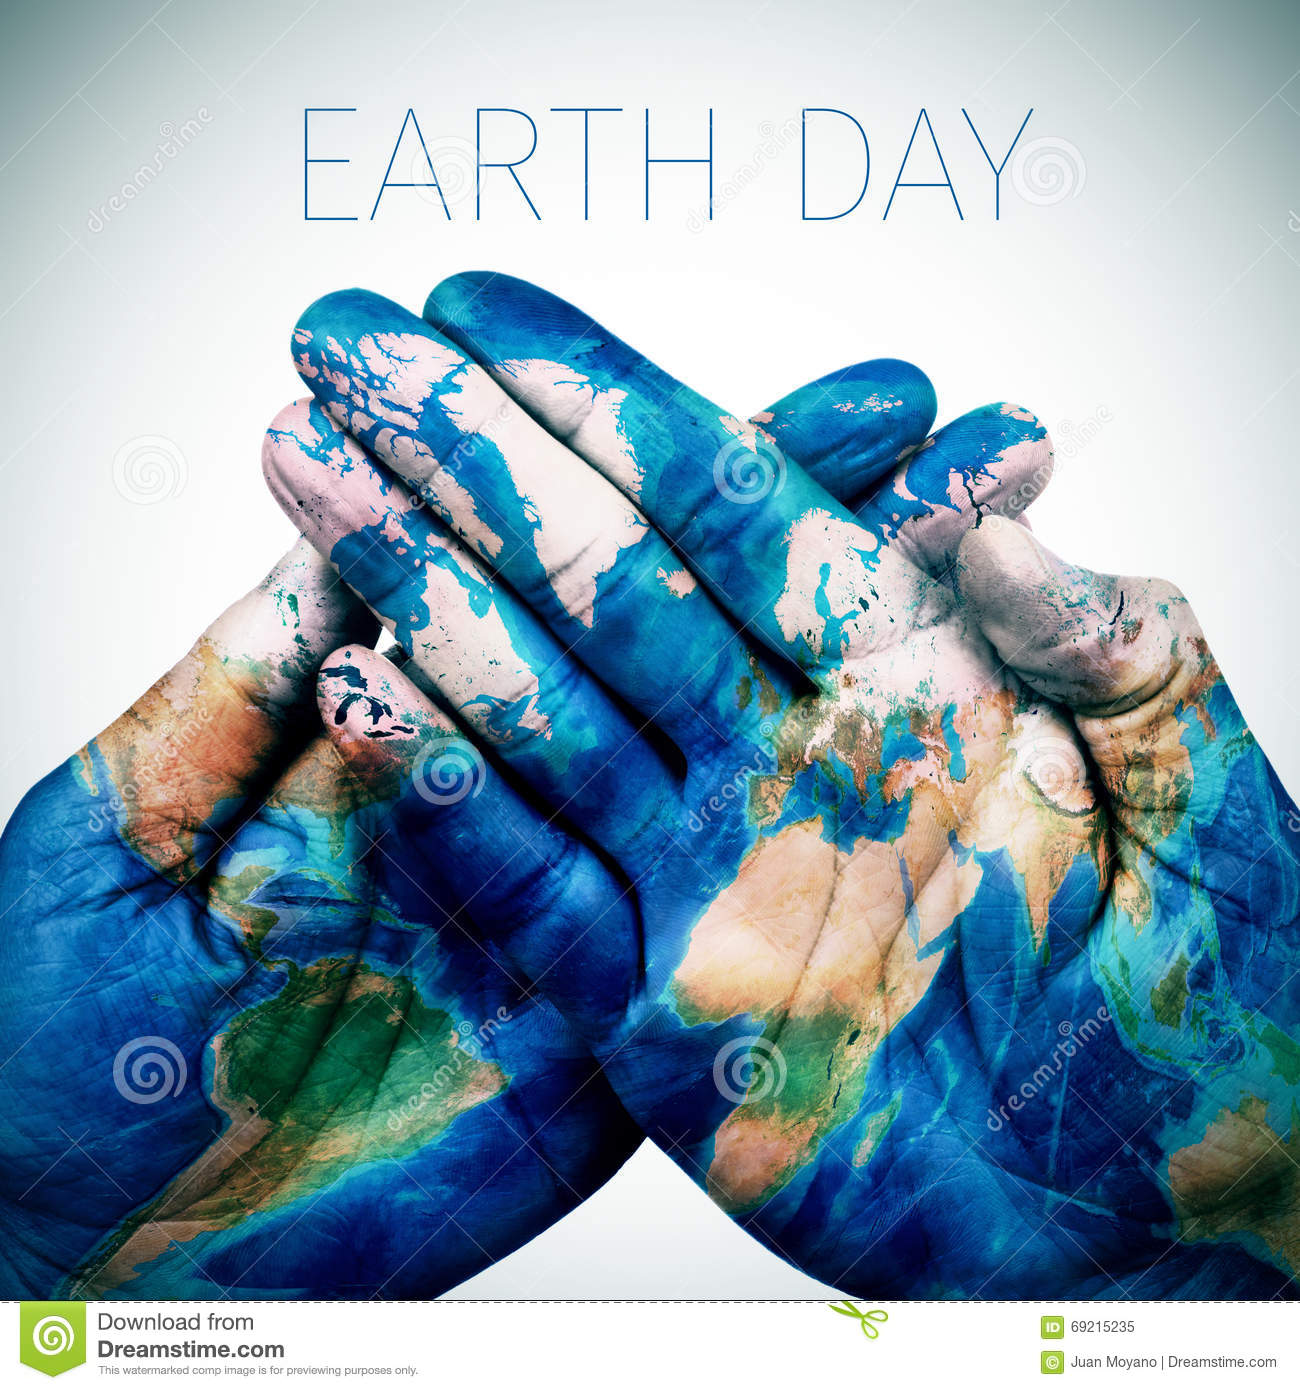 text earth day and man hands patterned with a world map (furnished by NASA)